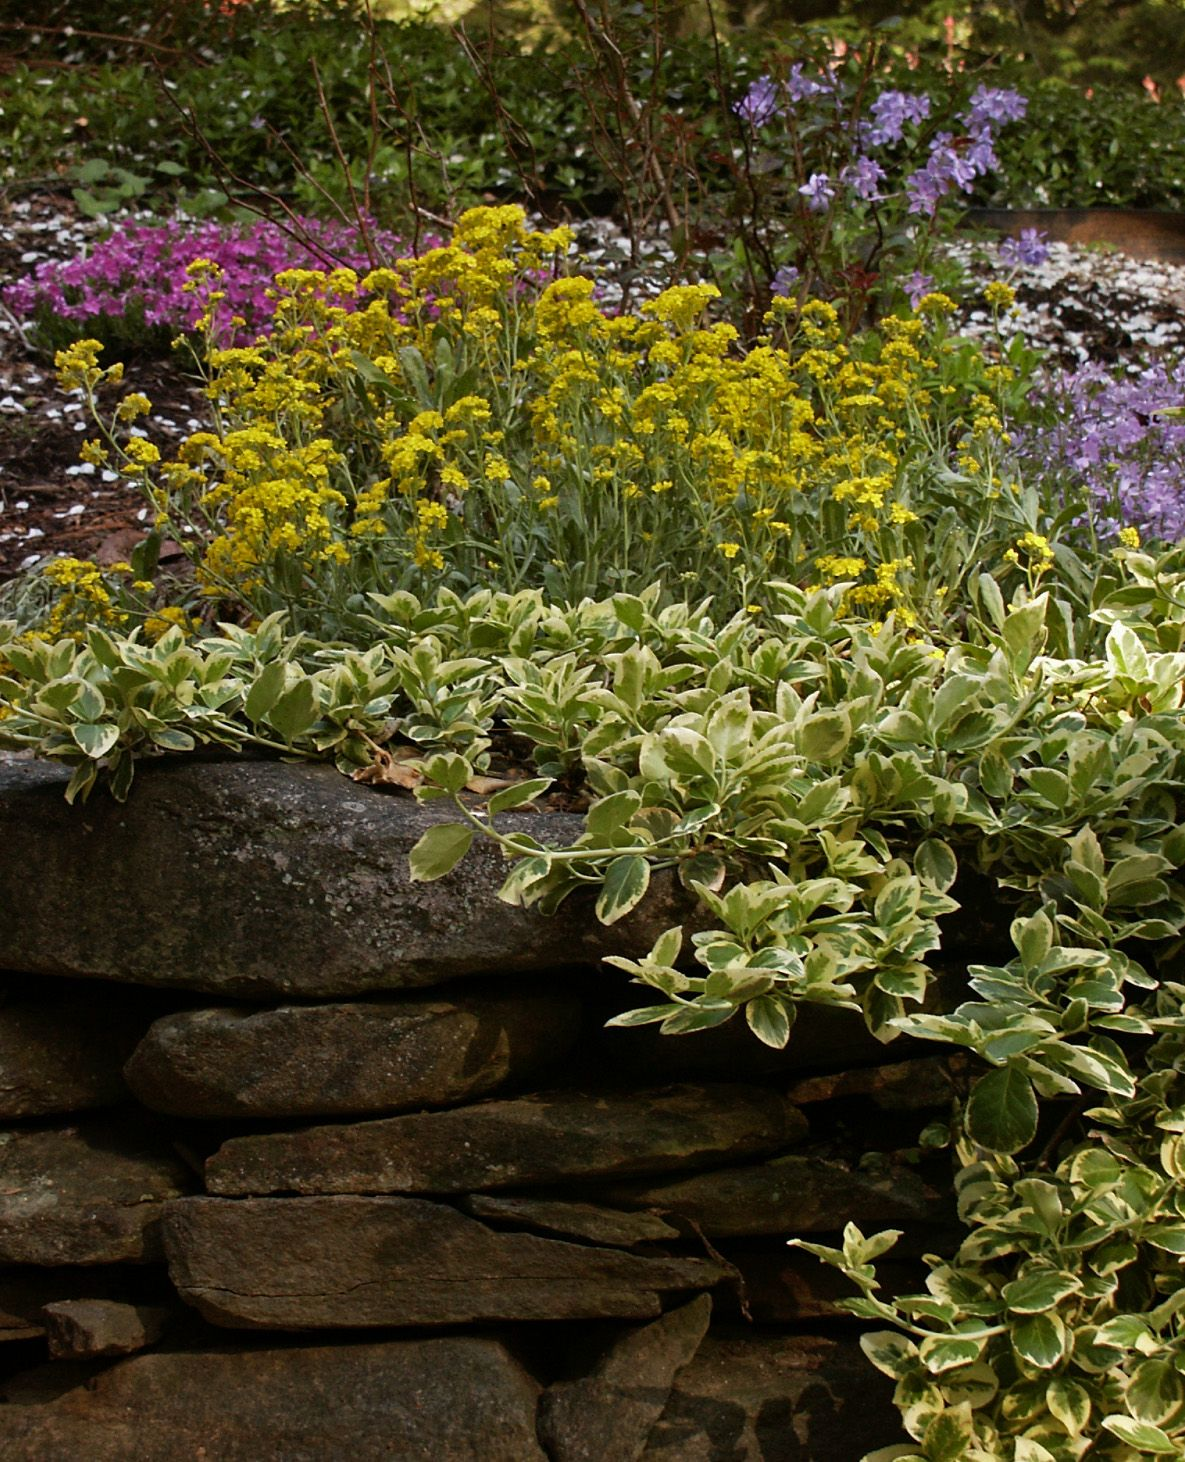 ideas for plants that will cascade over retaining wall new england gardening forum gardenweb - Vegetable Garden Ideas New England